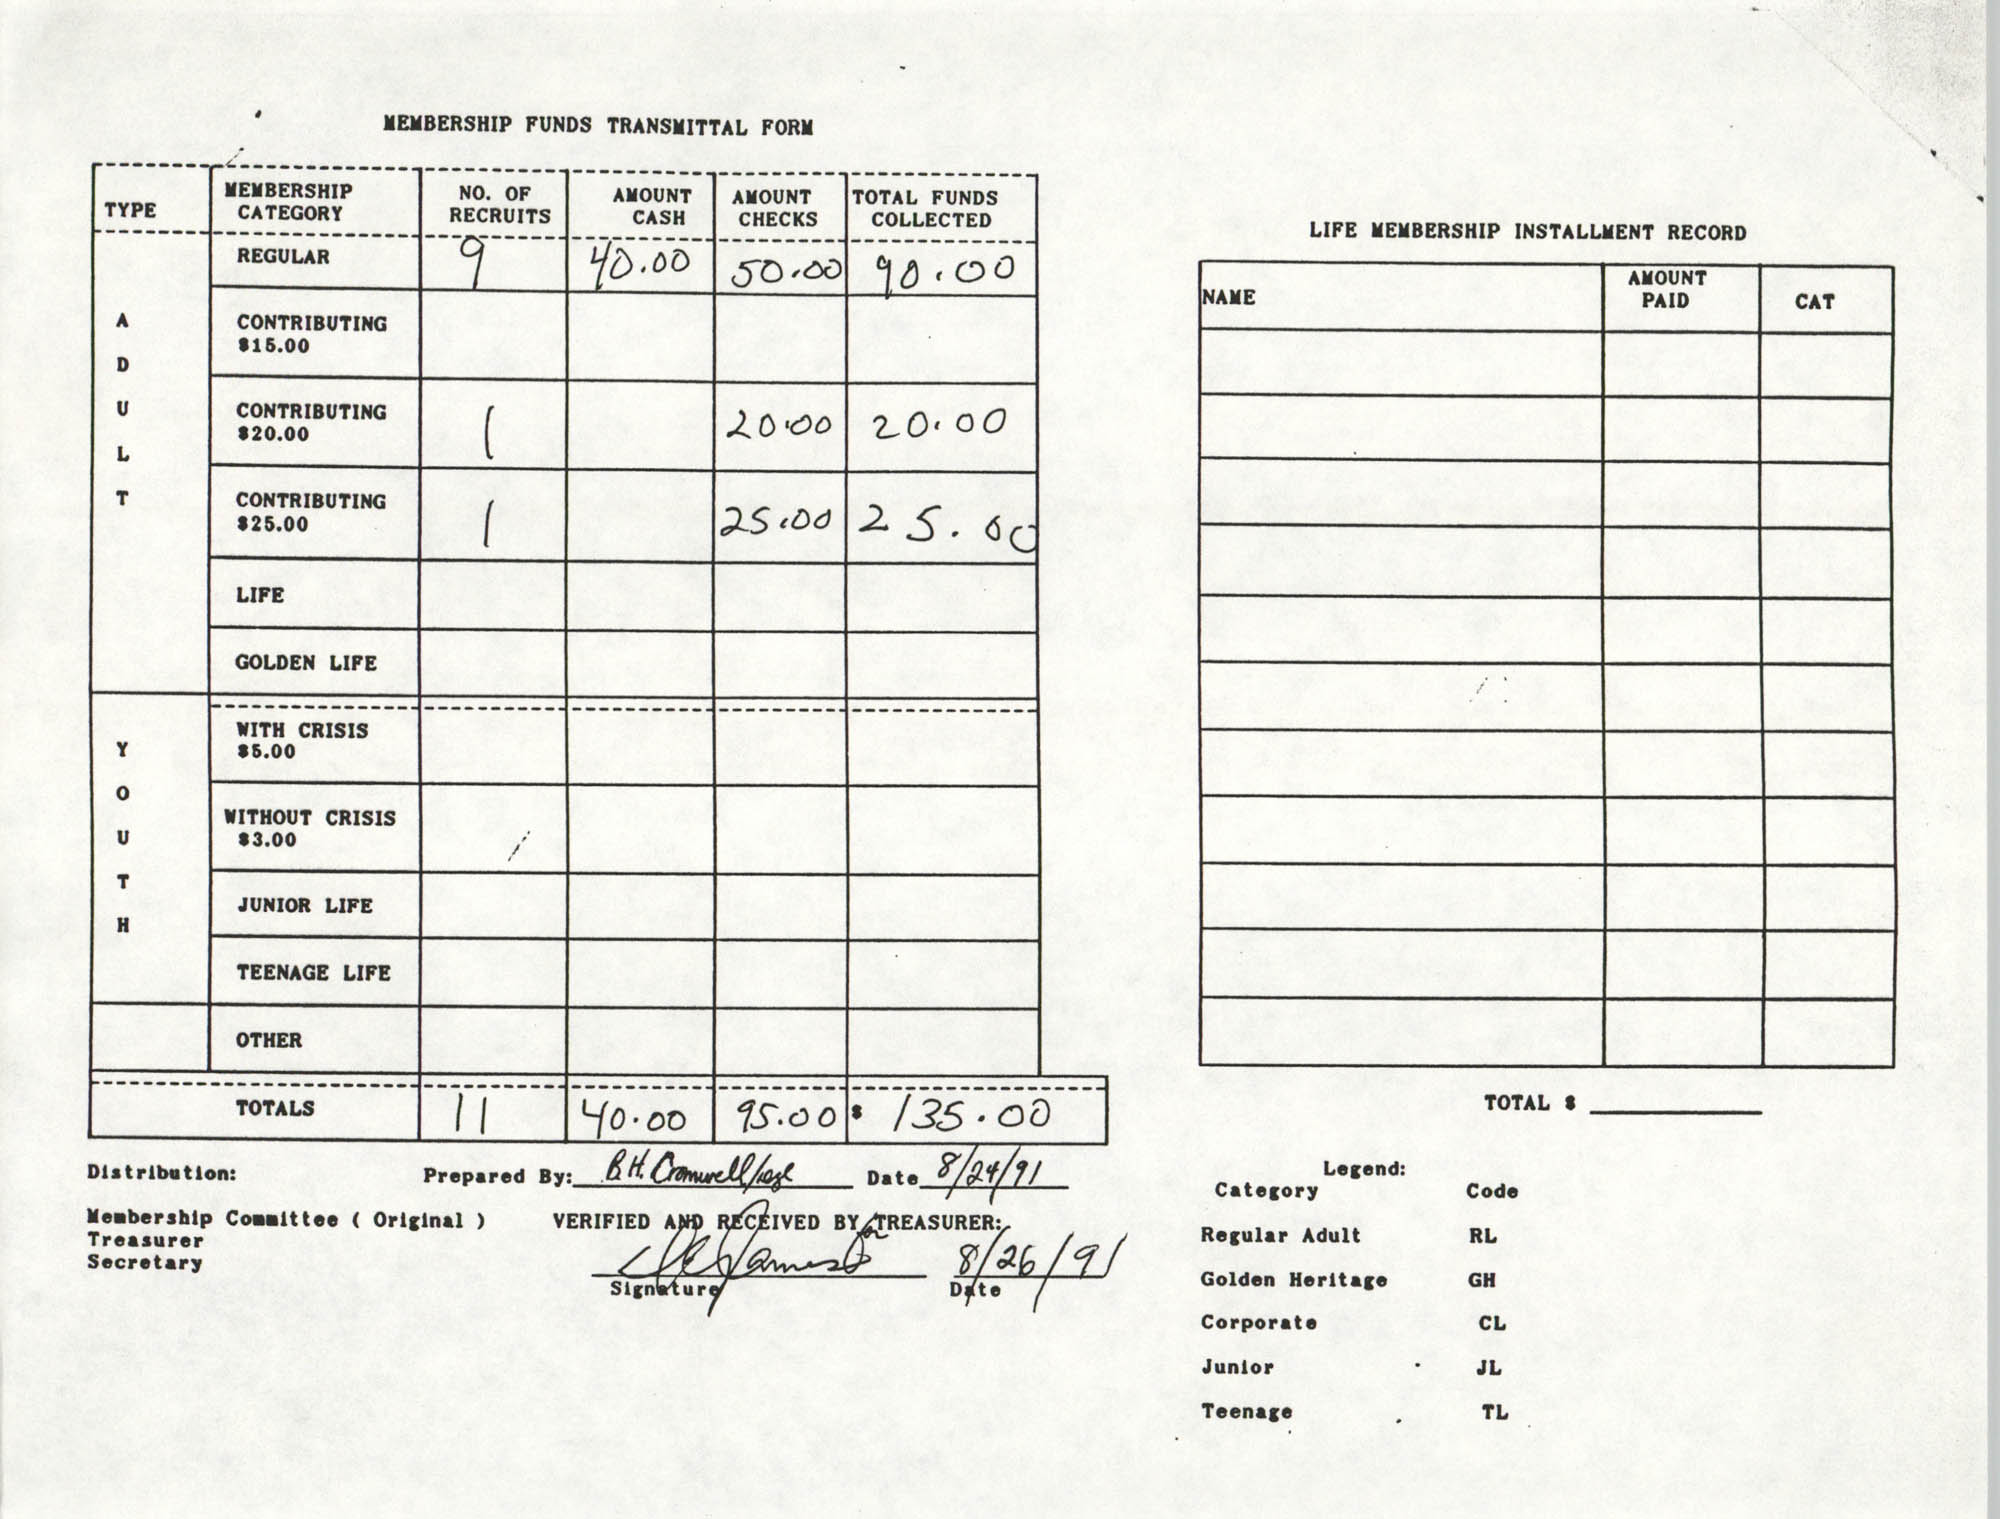 Charleston Branch of the NAACP Funds Transmittal Forms, August 1991, Page 5